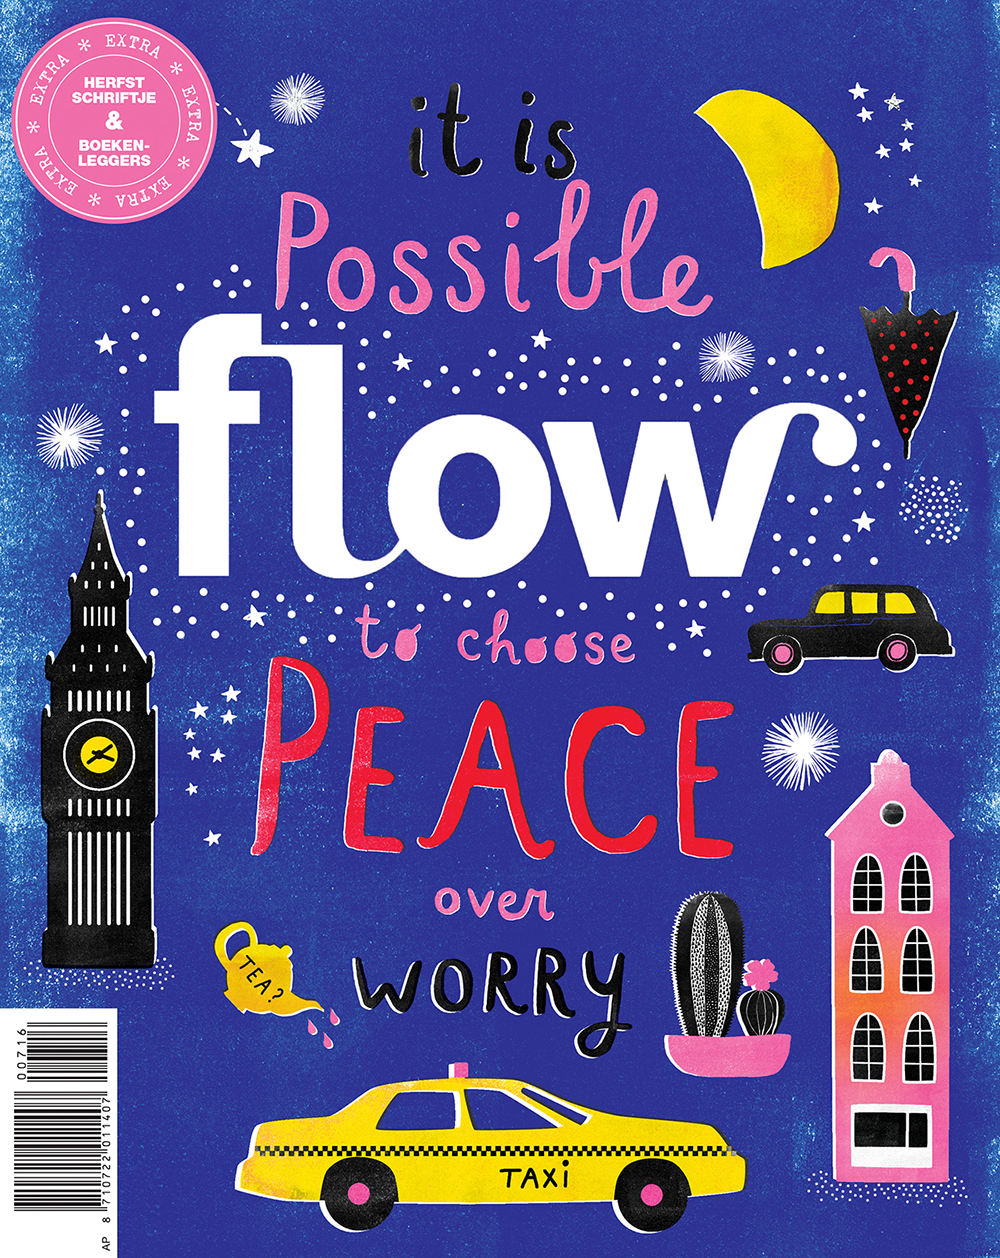 Flow Christmas cover by Marenthe.jpg